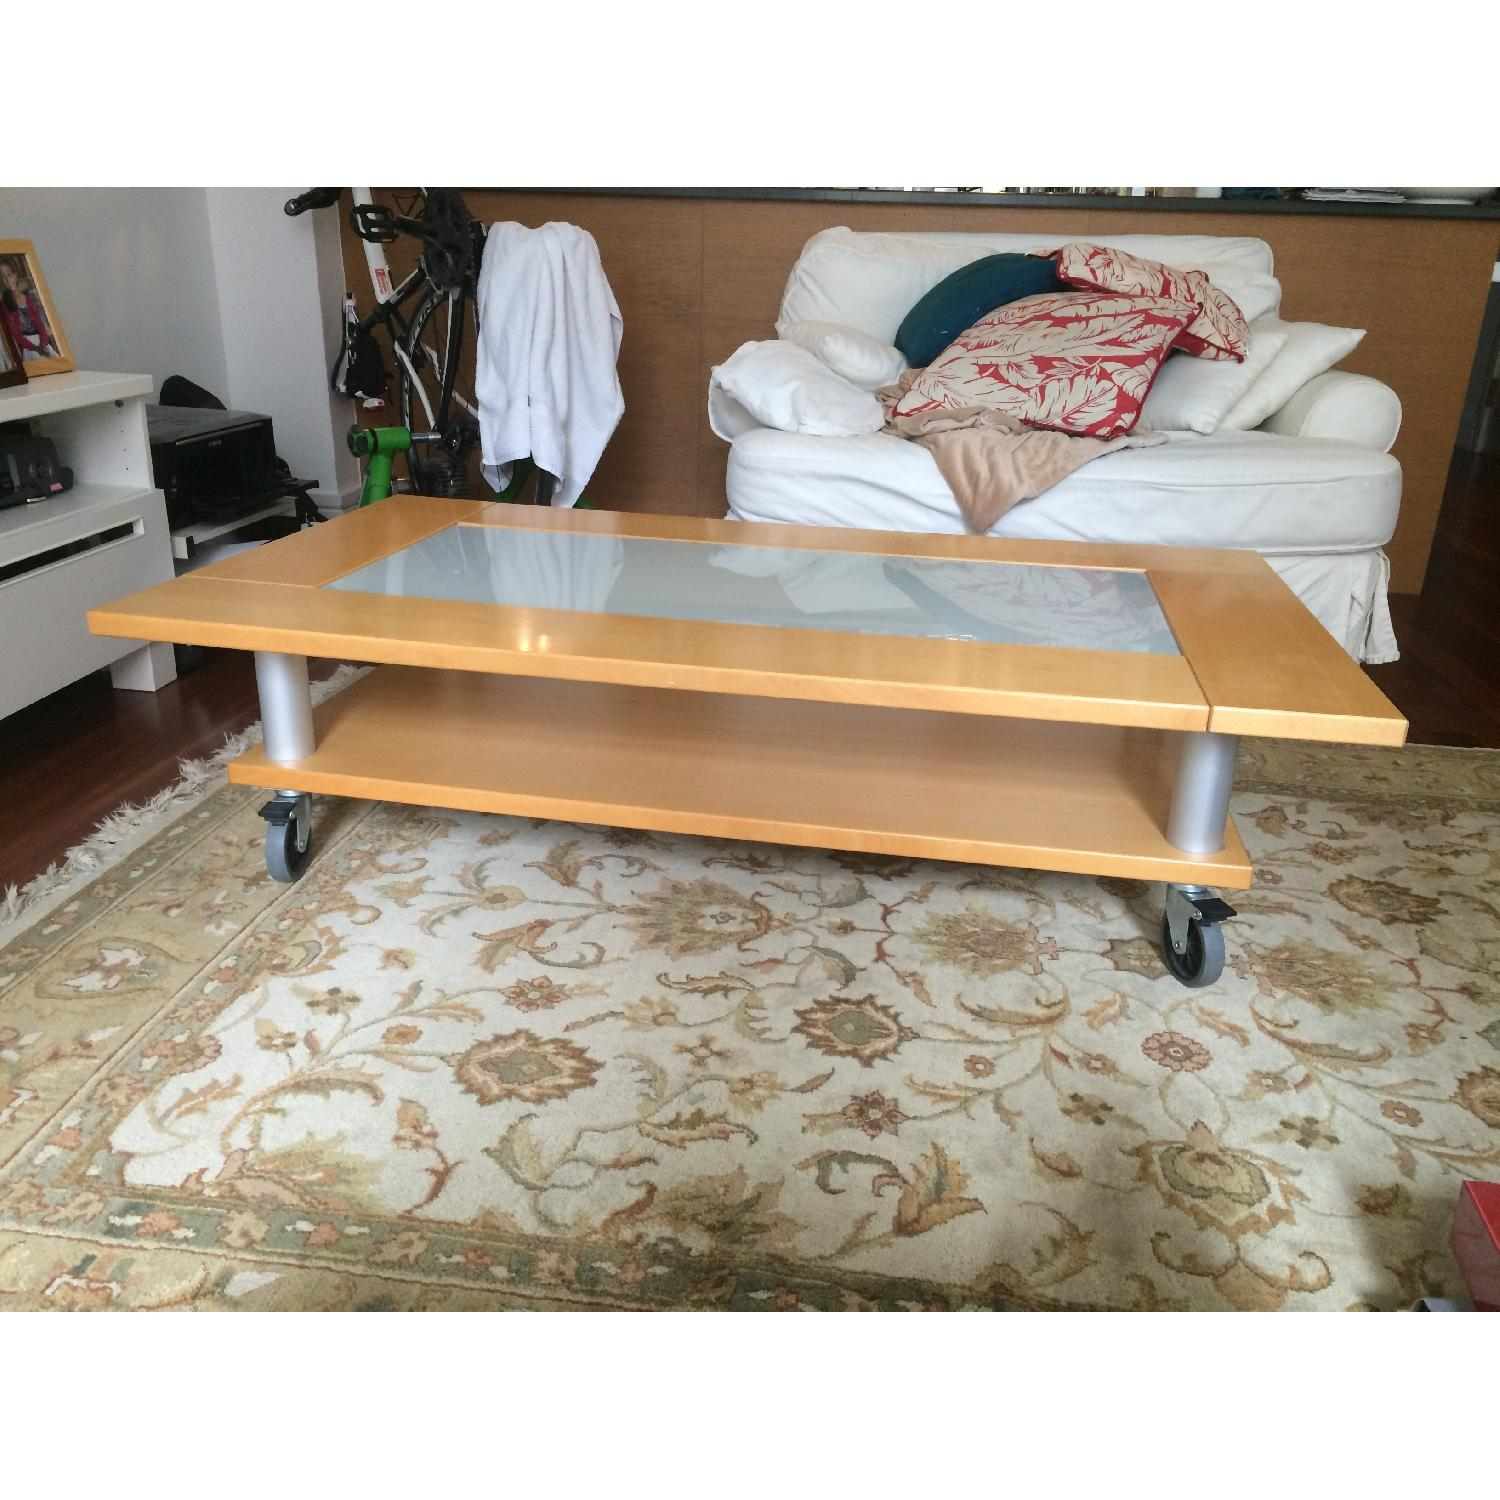 Two-Tier Coffee Table on Wheels - image-8